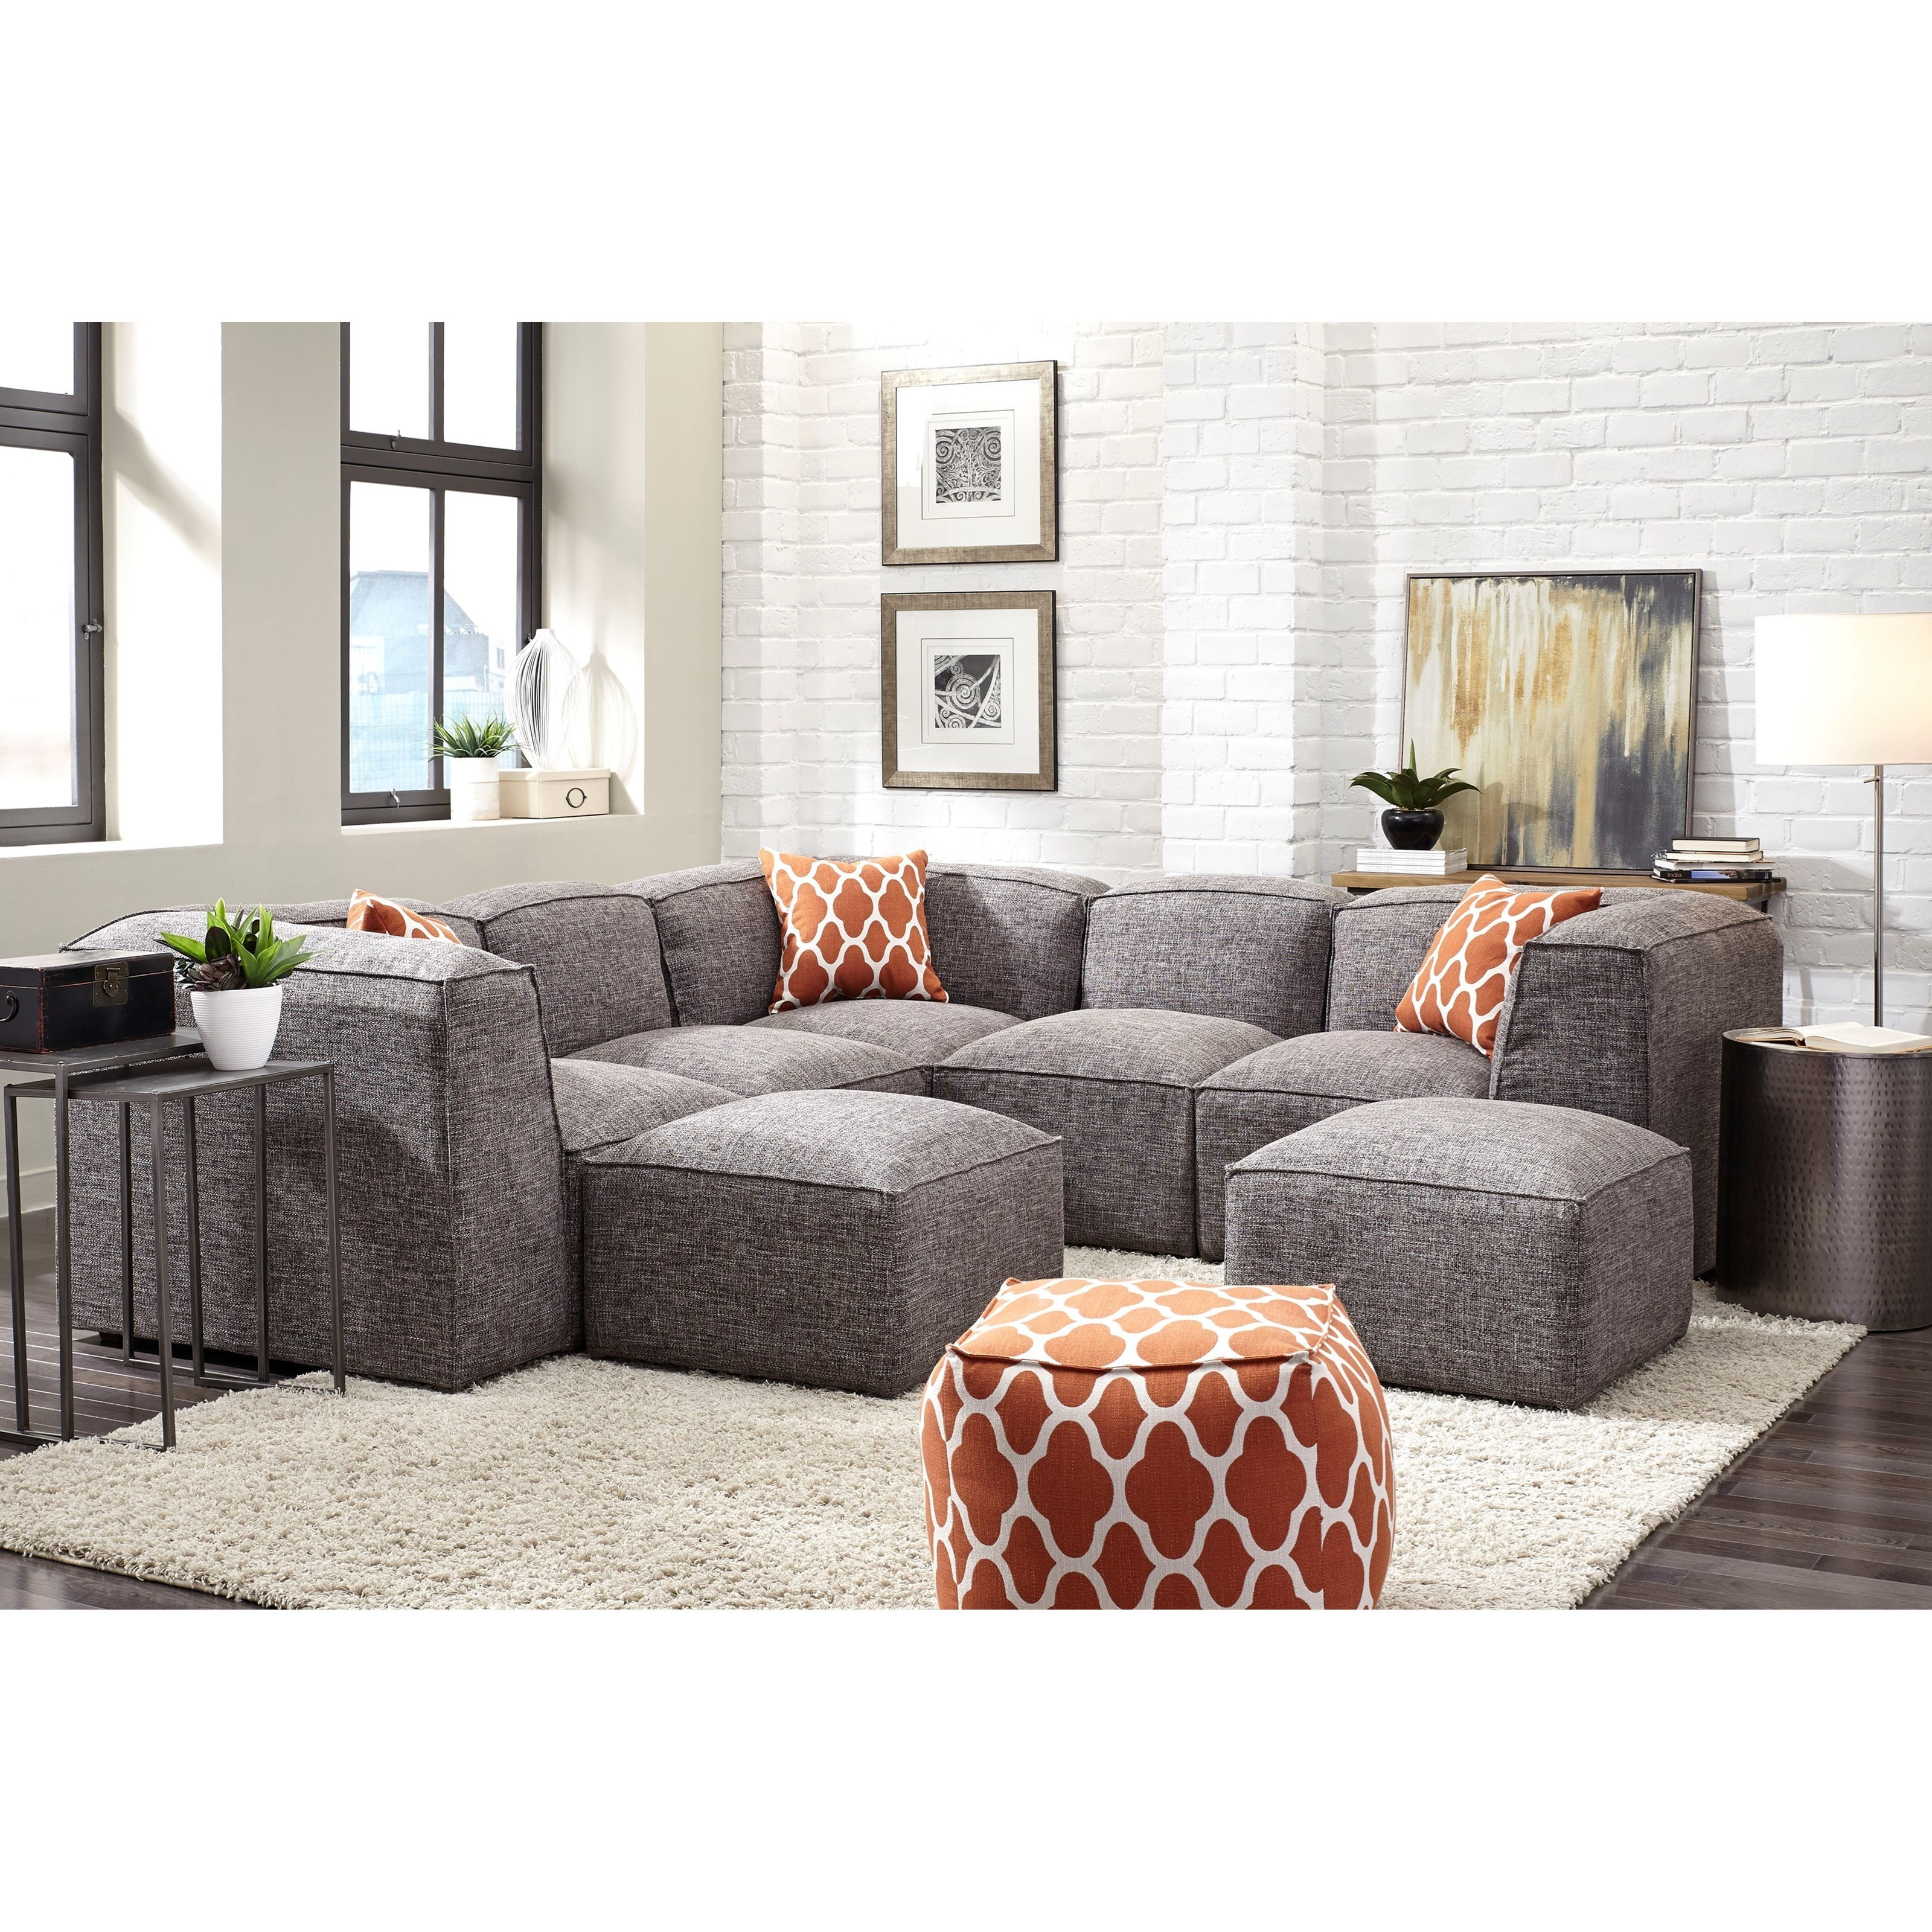 572 reclining sectional sofa with chaise by franklin tv tray in